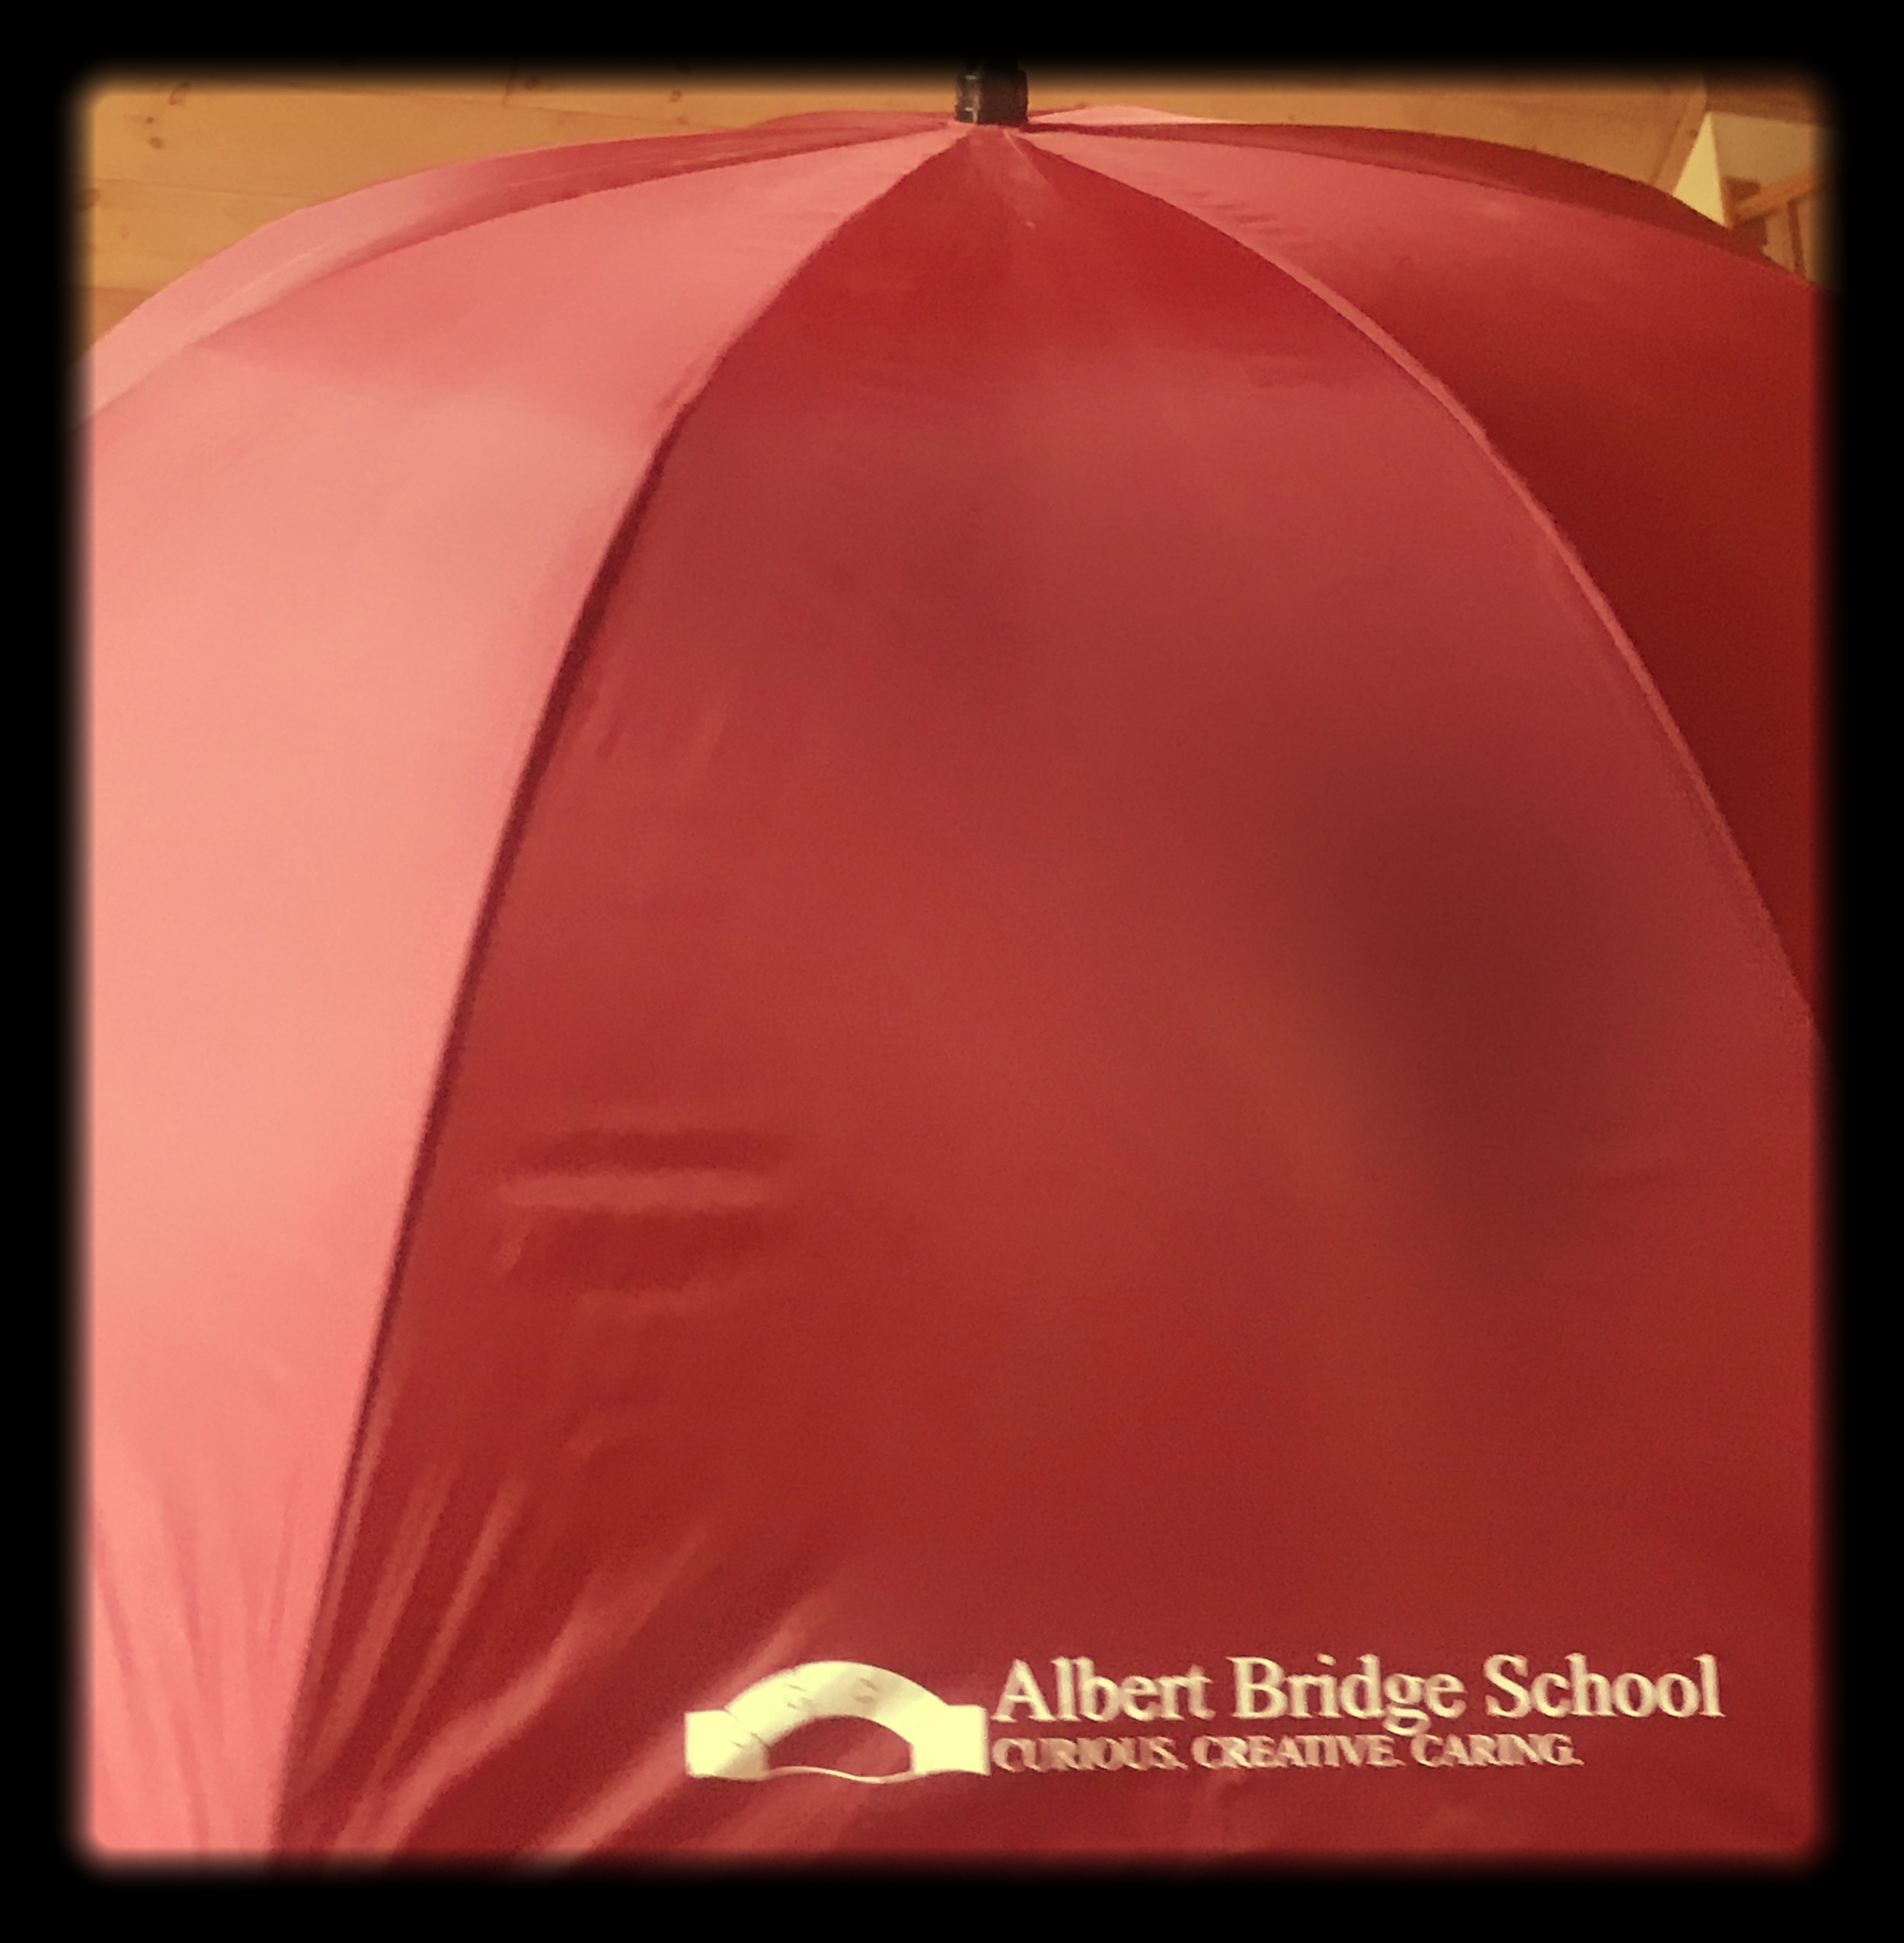 """Under the umbrella of Ascutney Winds,  SCIP , and  Albert Bridge School , Brownsville welcomes the return of the  Umbrella Concert Series . In 2018, two concerts are on offer for  Brownsville : the  New England Brass Band  on July 3rd, and  Amherst Jazz Orchestra  on August 18th.  These concerts are part of a continuing series put on by Ascutney Winds, a non-profit that brings professional musicians to the communities surrounding  Mt. Ascutney . Later in the summer, on August 18th, return to Brownsville for a """"Kick Off Your Shoes and Dance"""" concert, featuring the big band sounds of the  Amherst Jazz Orchestra , which played in Brownsville last year to great result. This year, the ensemble returns to Brownsville with a dance set; a special dance floor will be part of the setup for anyone who finds his or her body already swaying to the sounds. Pack a picnic and blanket or chair, bring your family, and kick off your shoes and dance! Concert begins at 4:30.  Umbrellas are for sale at all concerts! Big, beautiful, and all-encompassing, they yours for a $35 tax-free donation to Ascutney Winds. Concerts are free of admission charge; donations to keep the series running are gratefully accepted."""